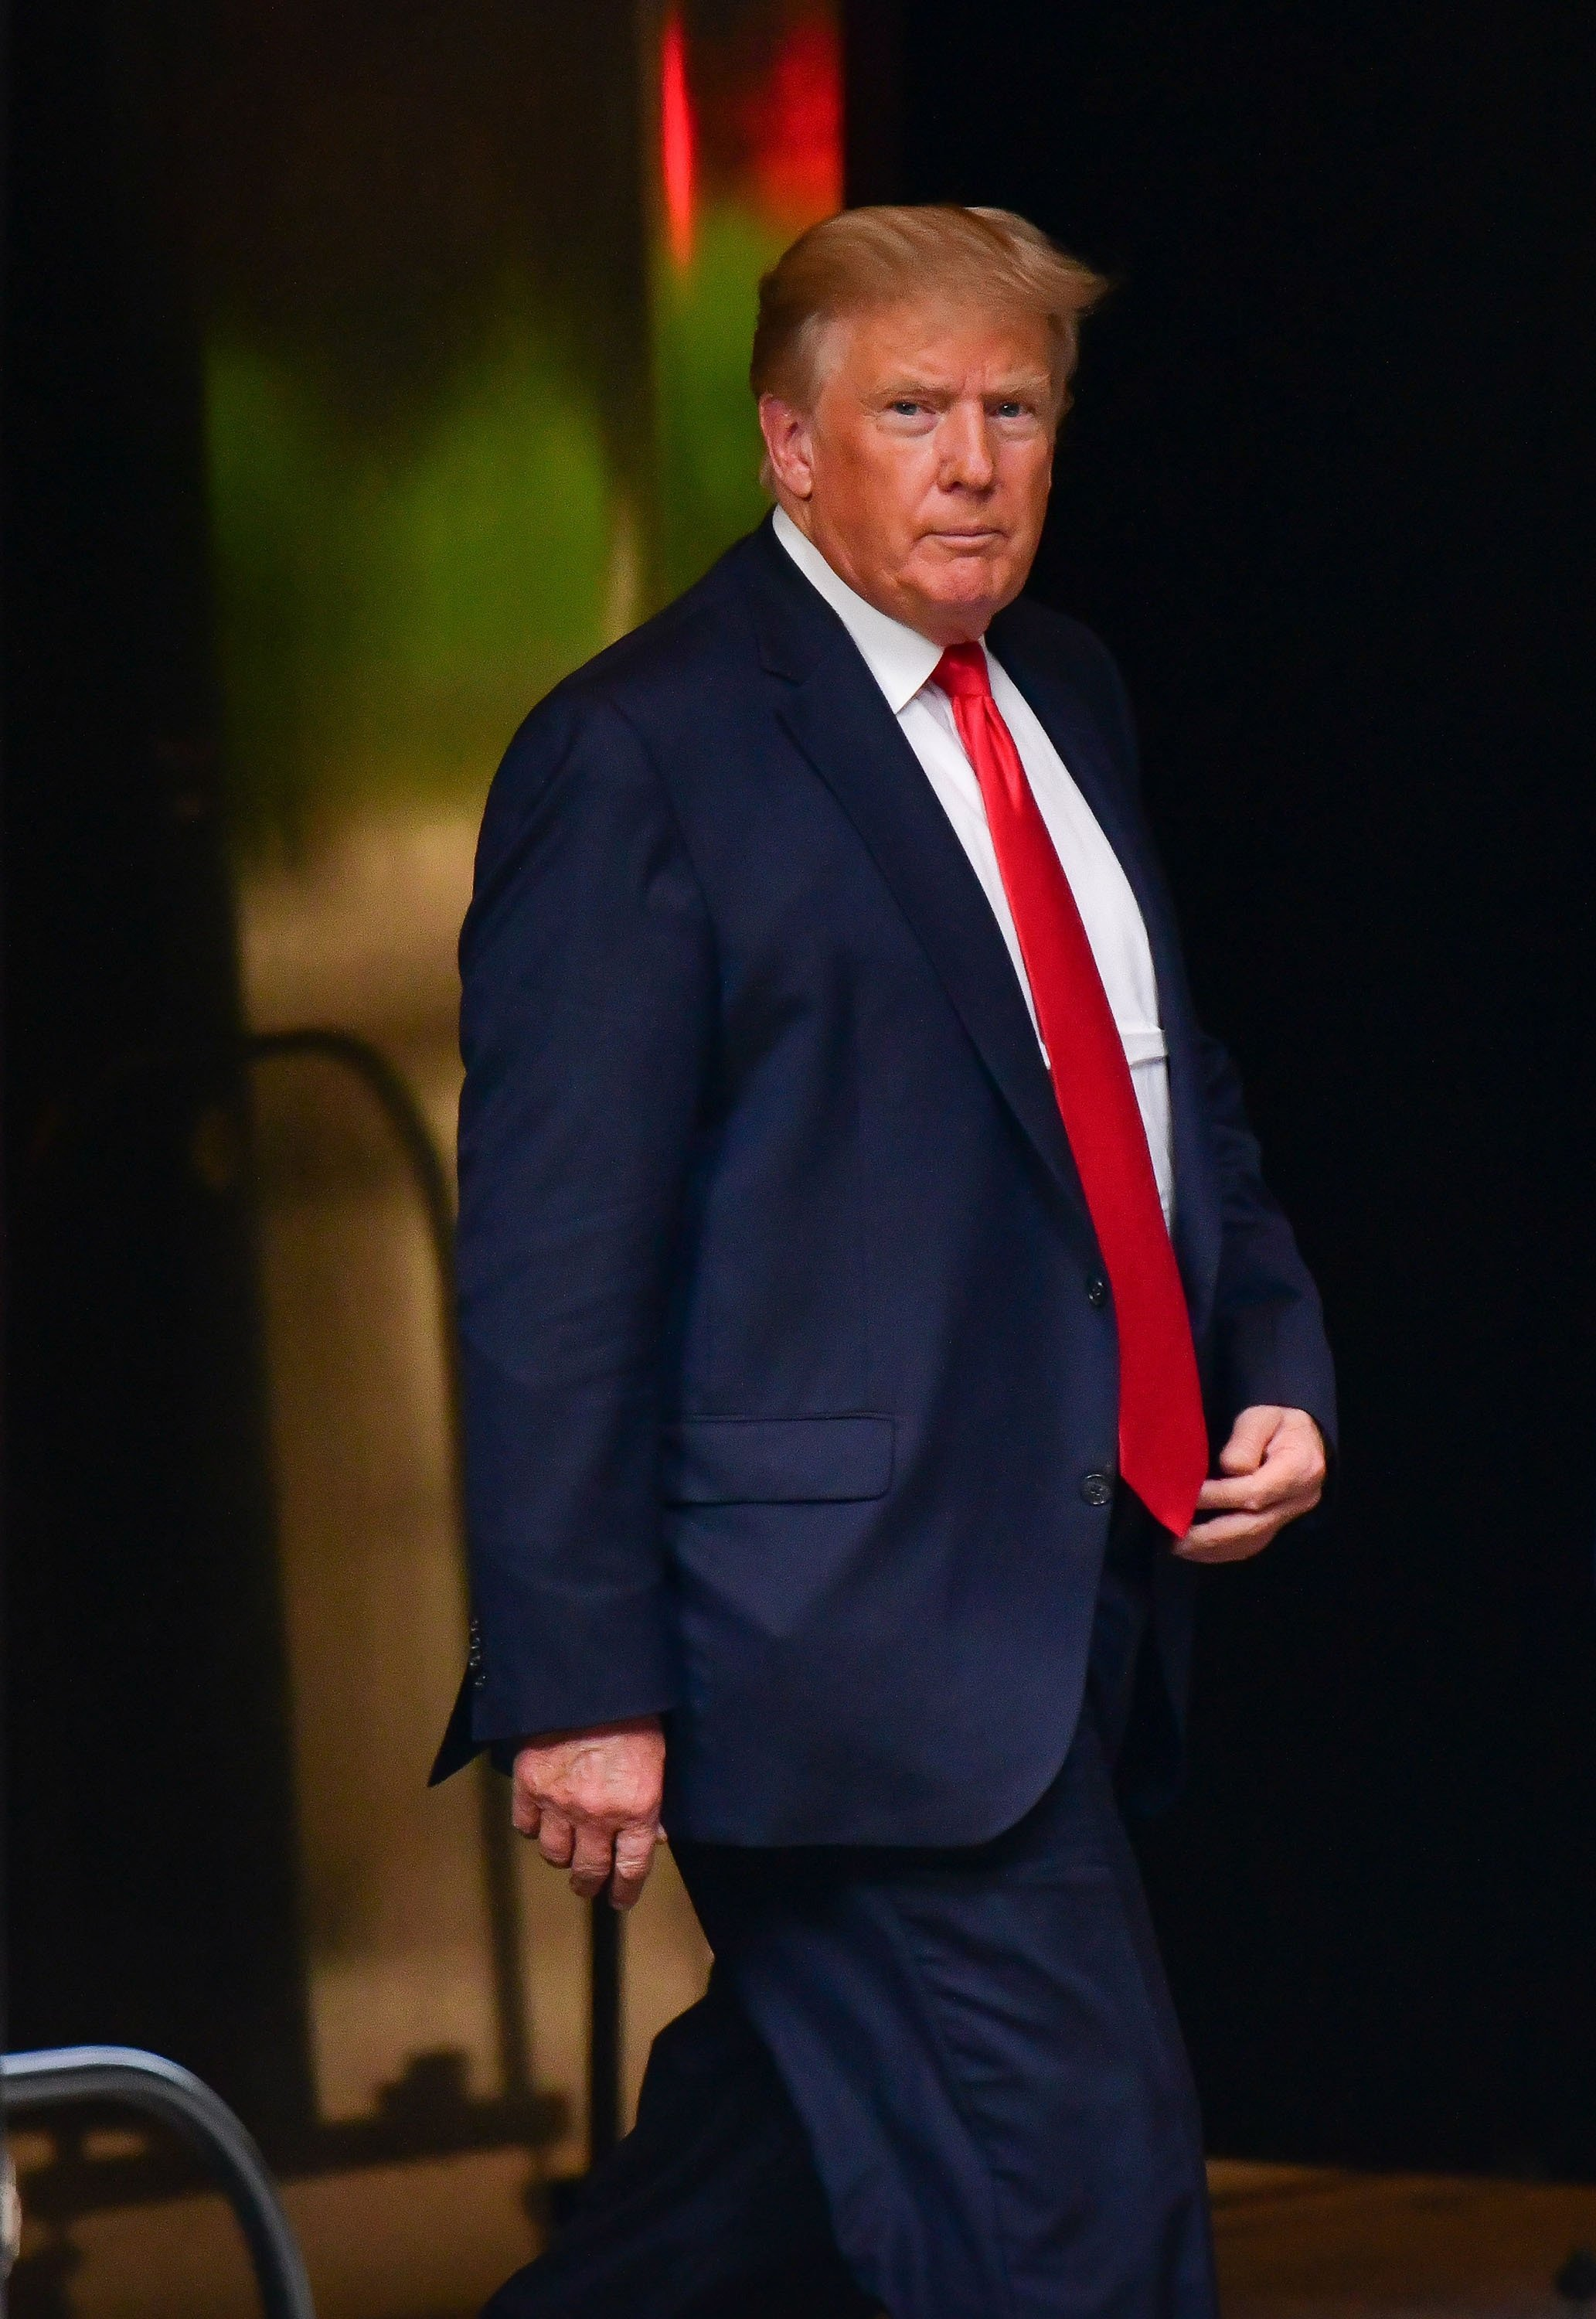 Former U.S. President Donald Trump leaves Trump Tower in Manhattan, New York, U.S. July 19, 2021. (Getty Images Photo)